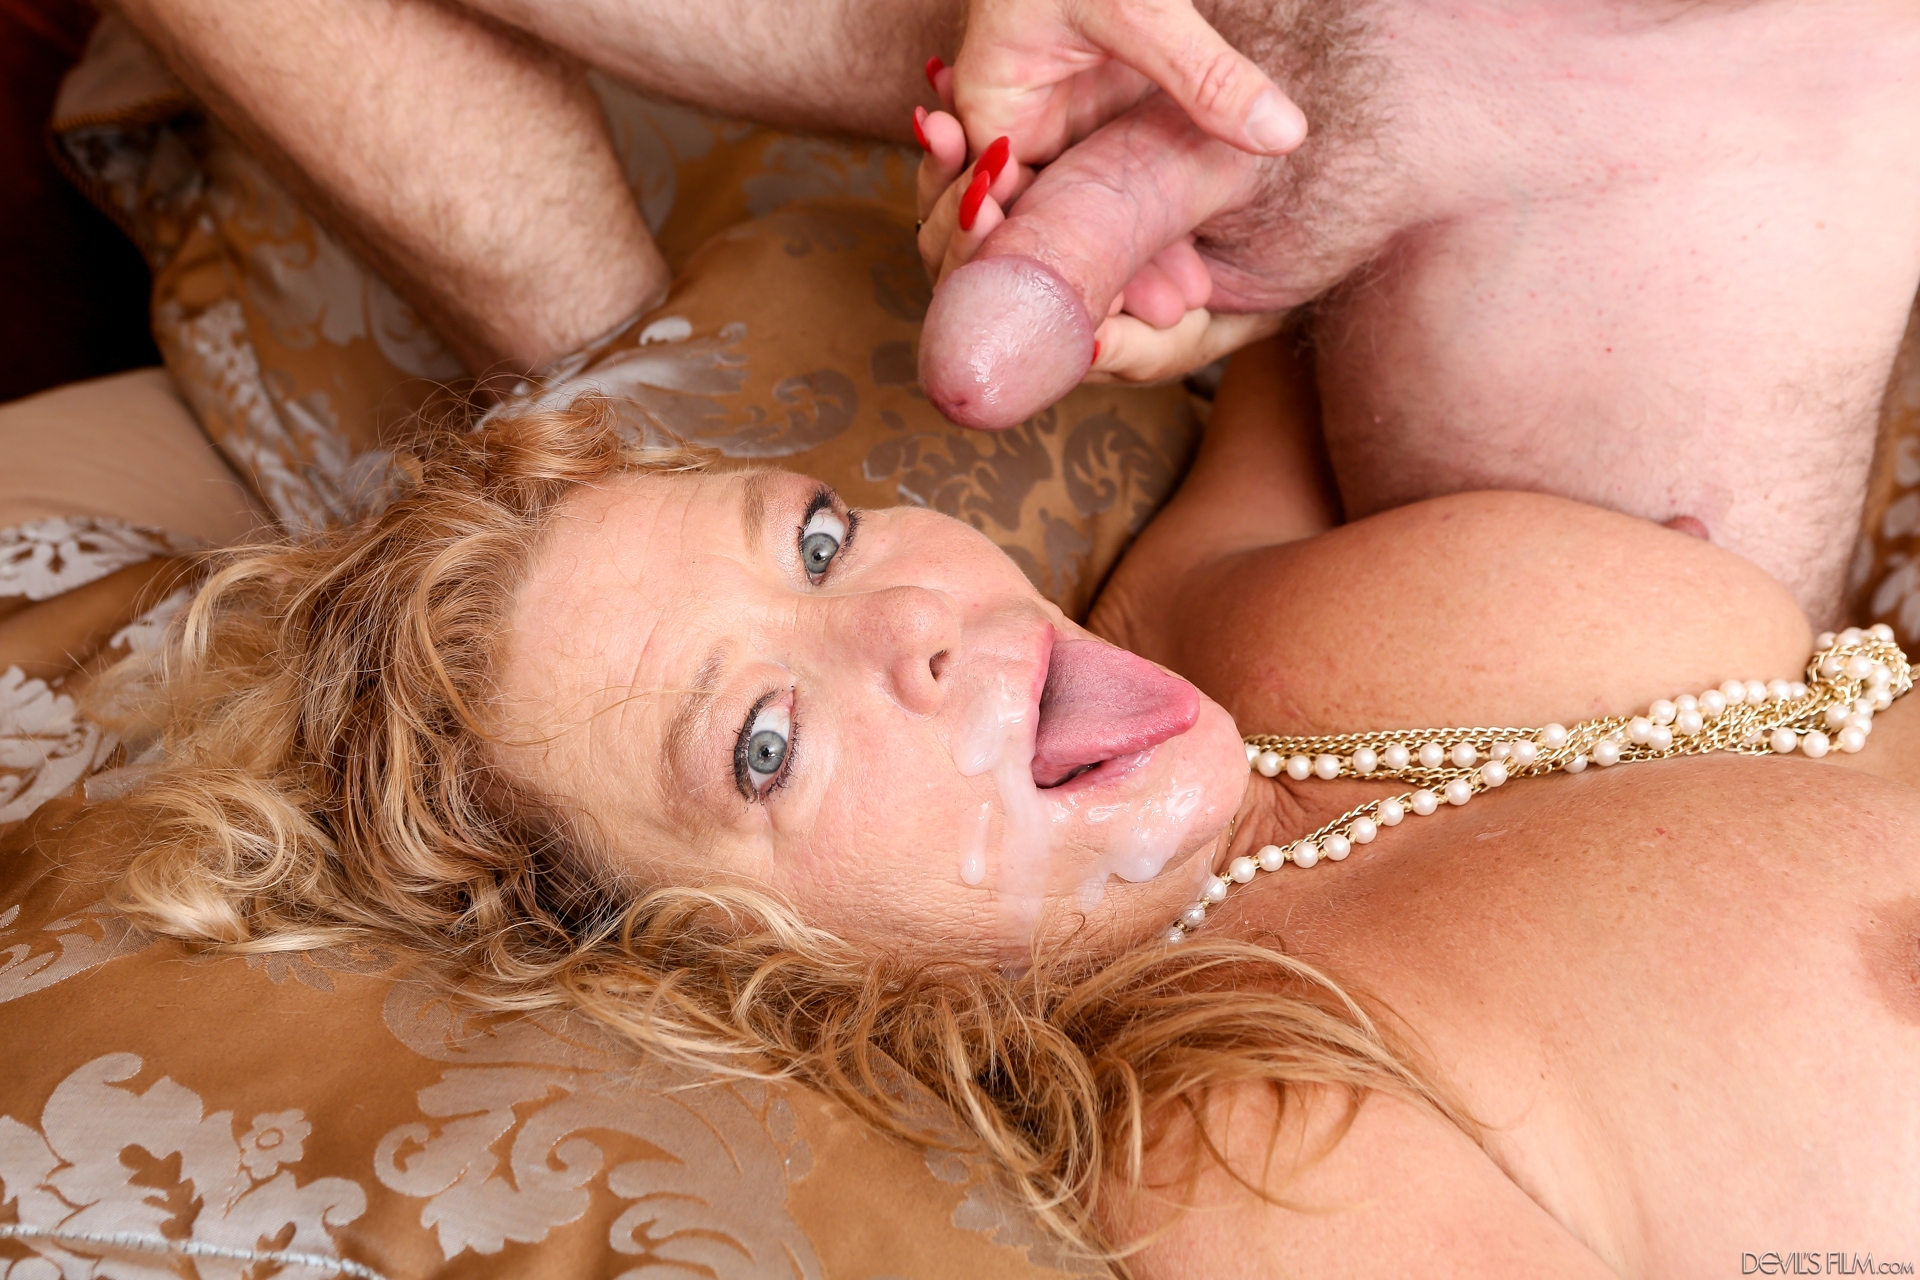 Intense orgasms with my rabbit toys 3